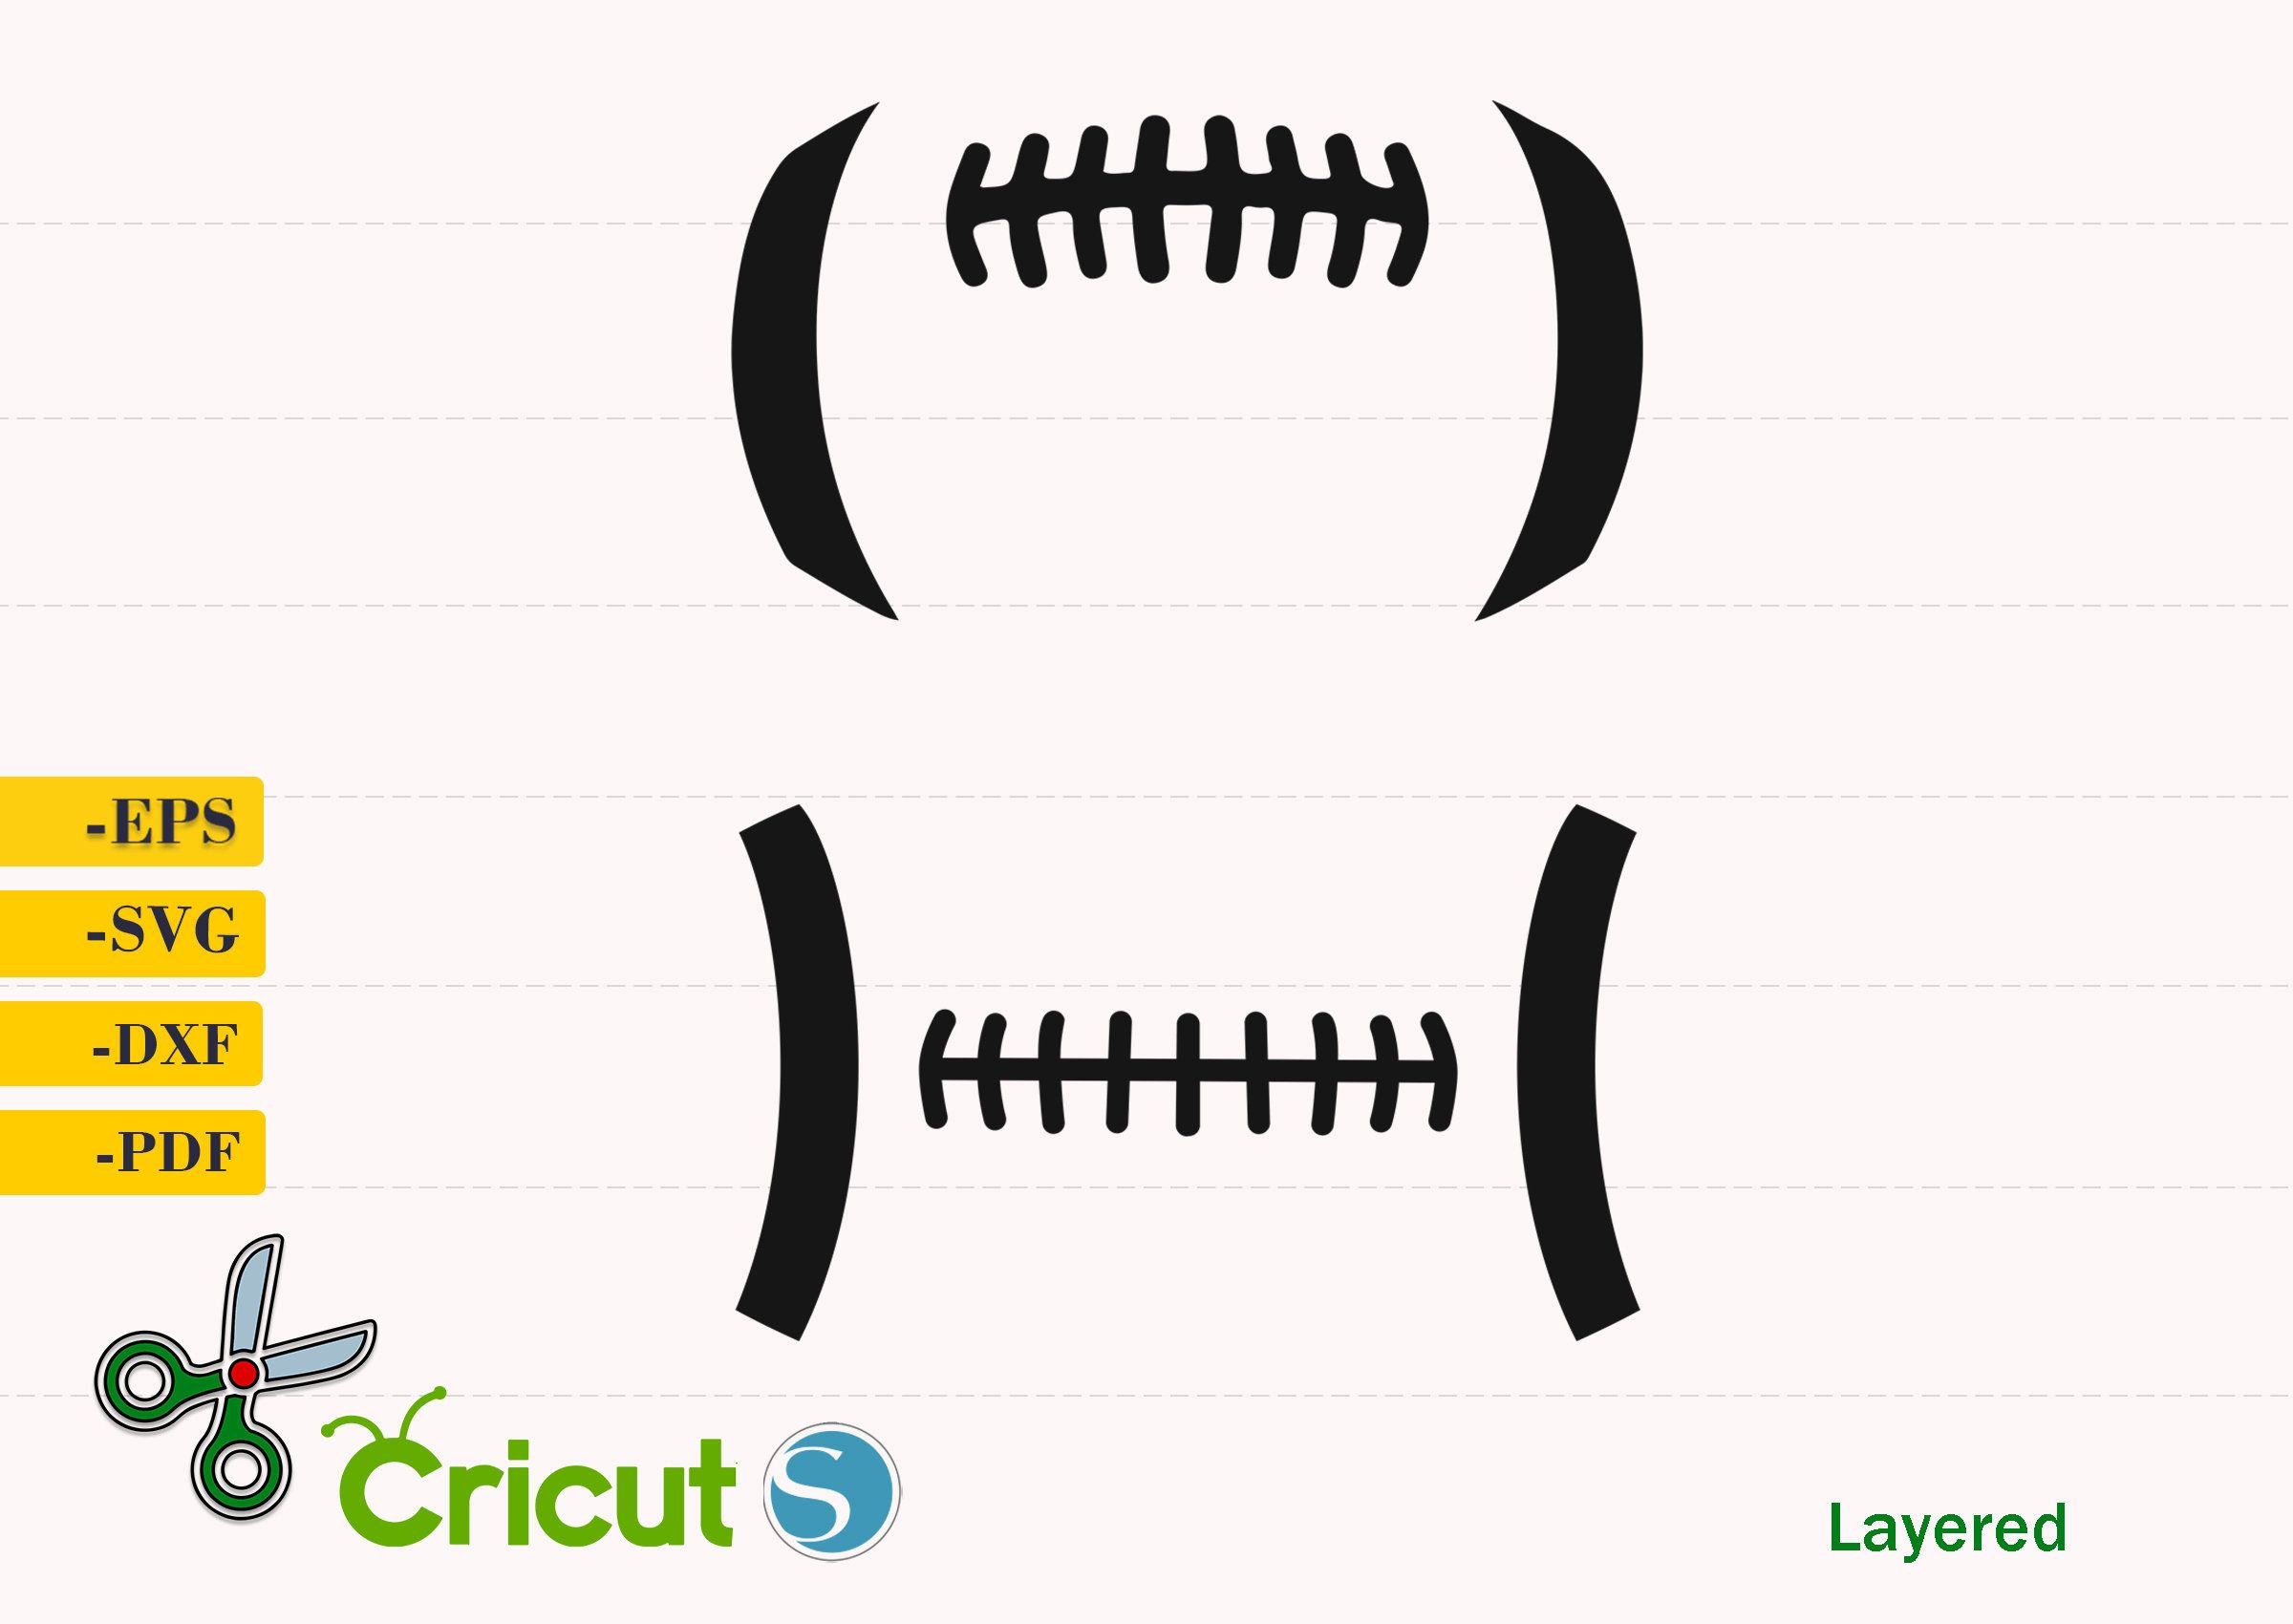 Football Laces Svg Football Ball Silhouette Football Laces Png Football Laces Cricut Football Outline Vect Lace Stencil Football Outline Stencil Templates